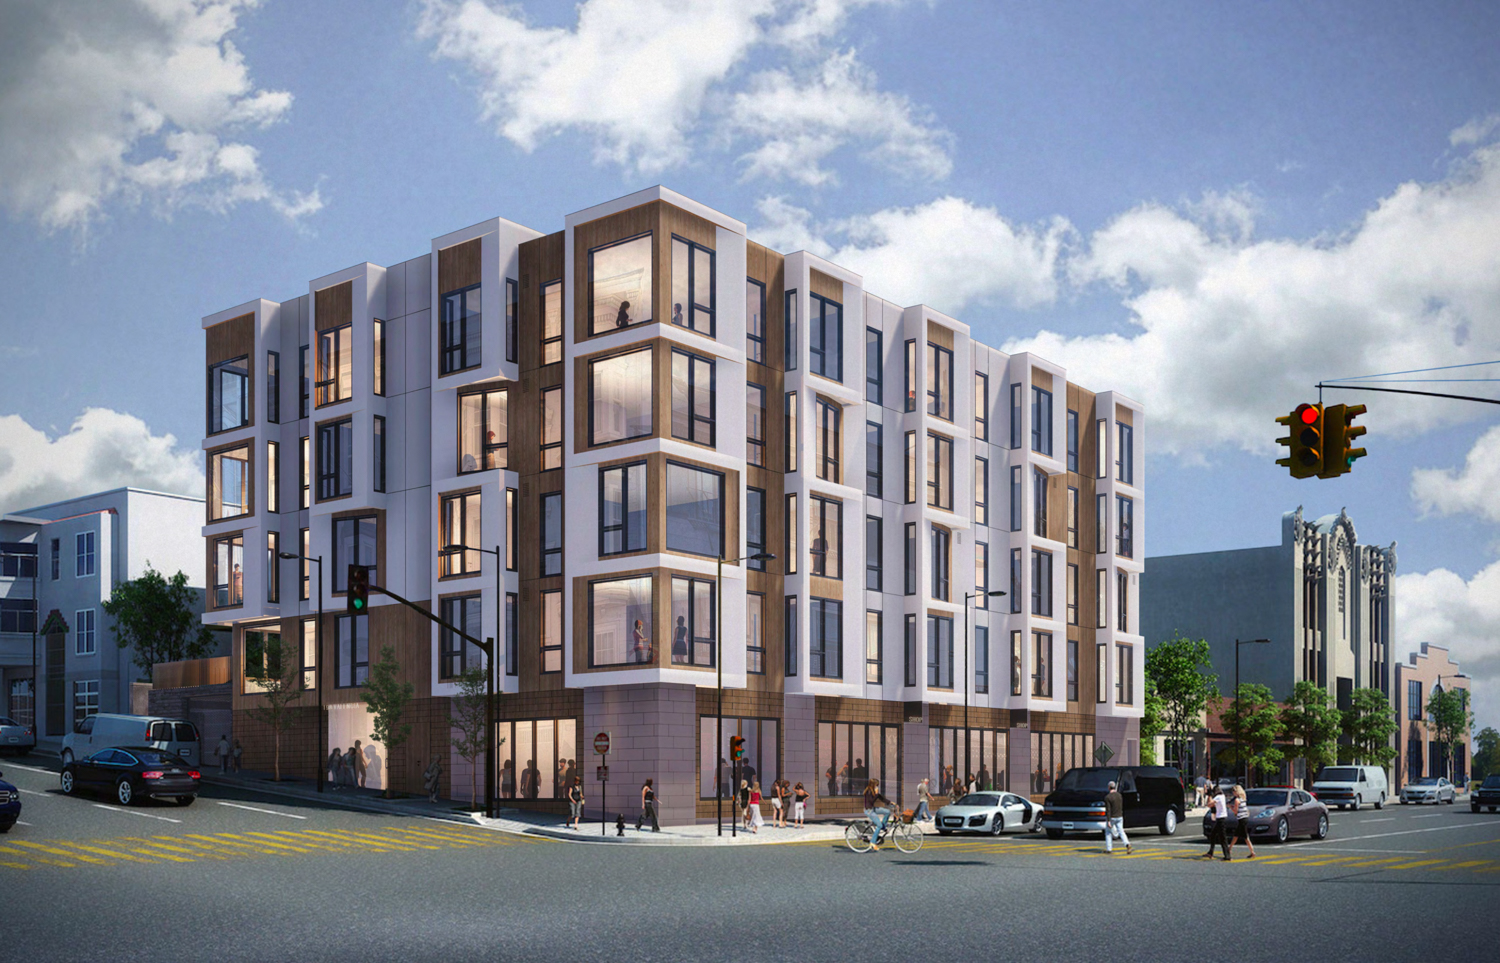 198 Valencia Street updated design, rendering by RG Architecture